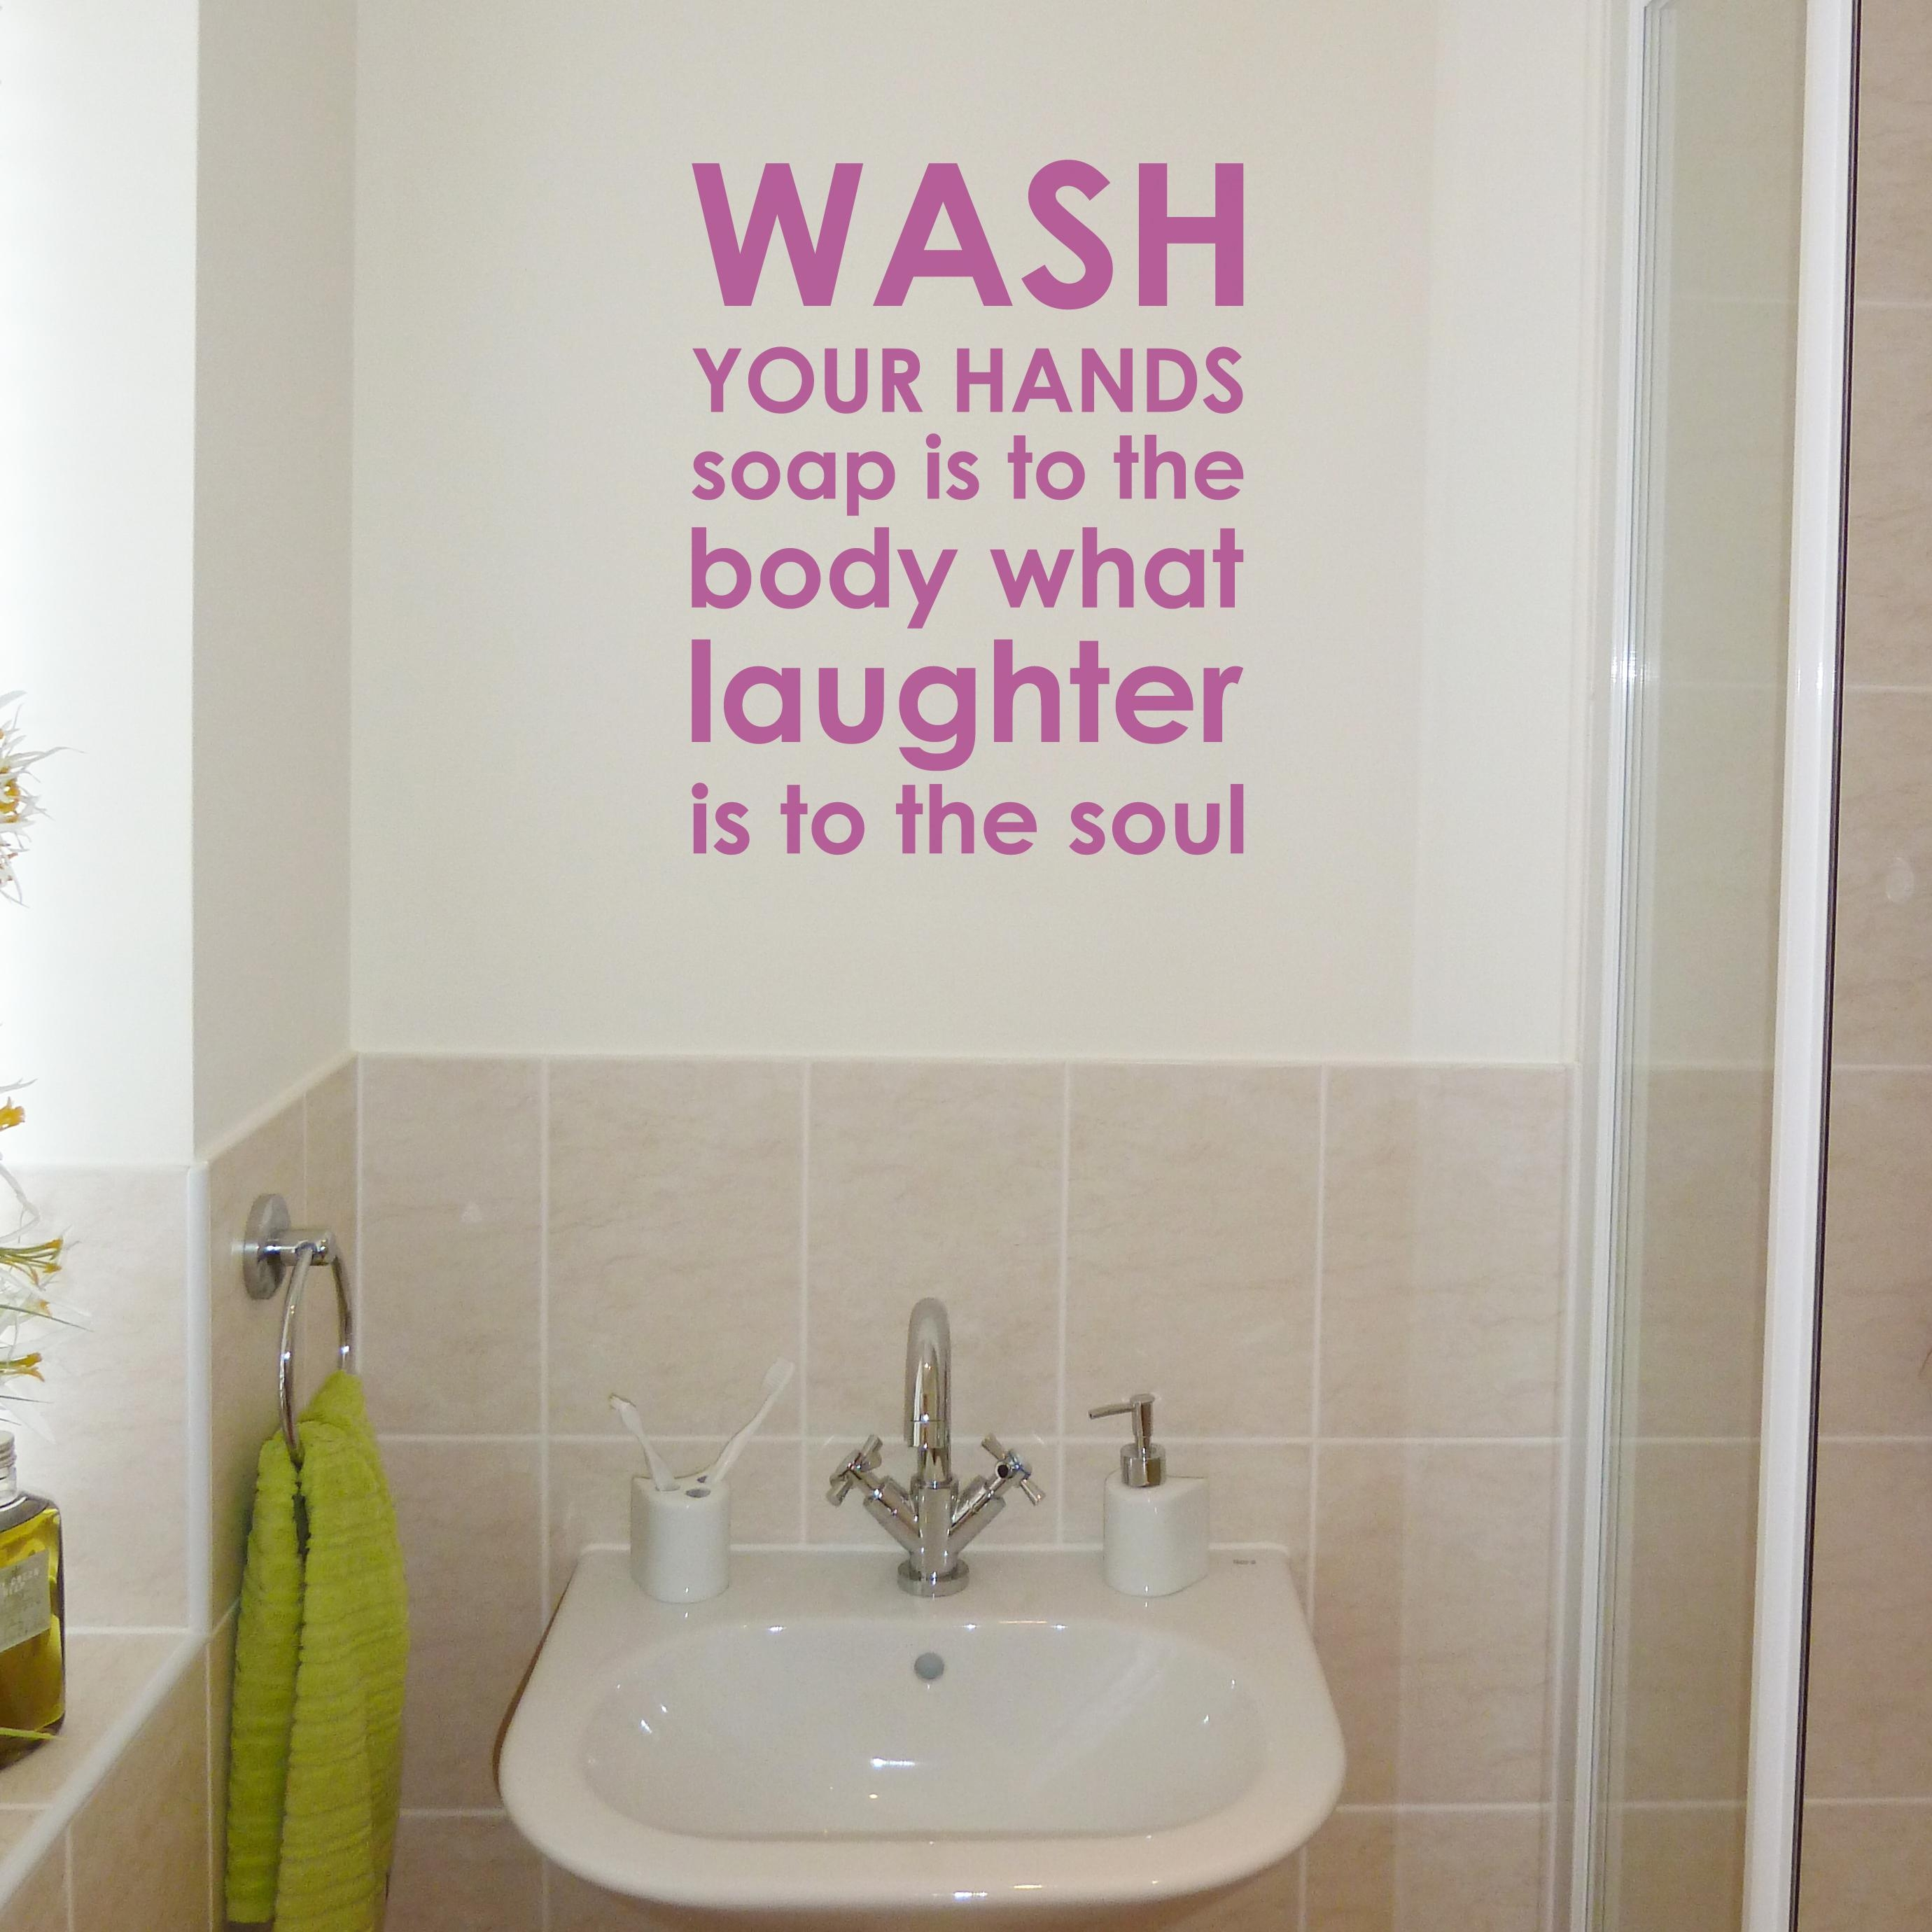 Best Diy Bathroom Wall Art On With Hd Resolution 2178X1452 Pixels Within Purple Bathroom Wall Art (Image 11 of 20)